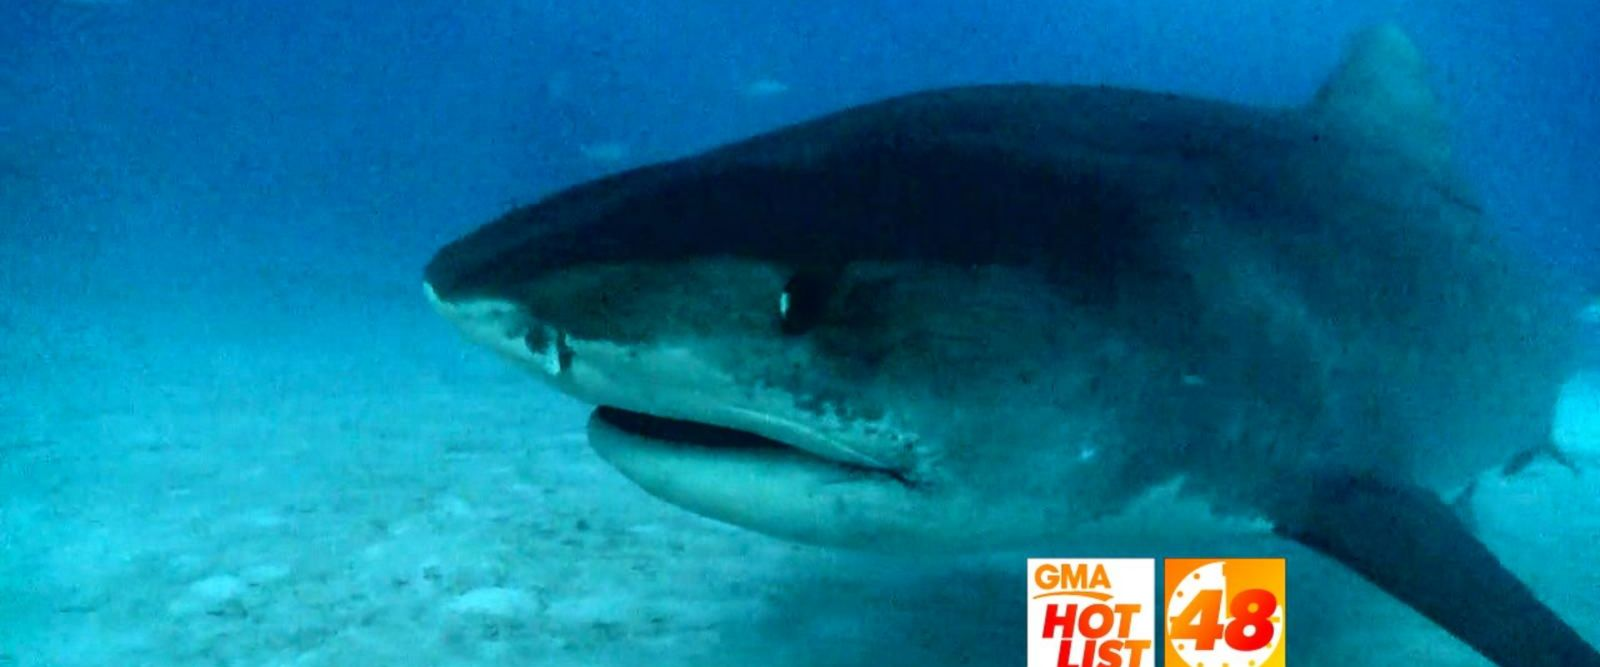 VIDEO: 'GMA' Hot List: Experts warn of an increase in great white sharks off Cape Cod